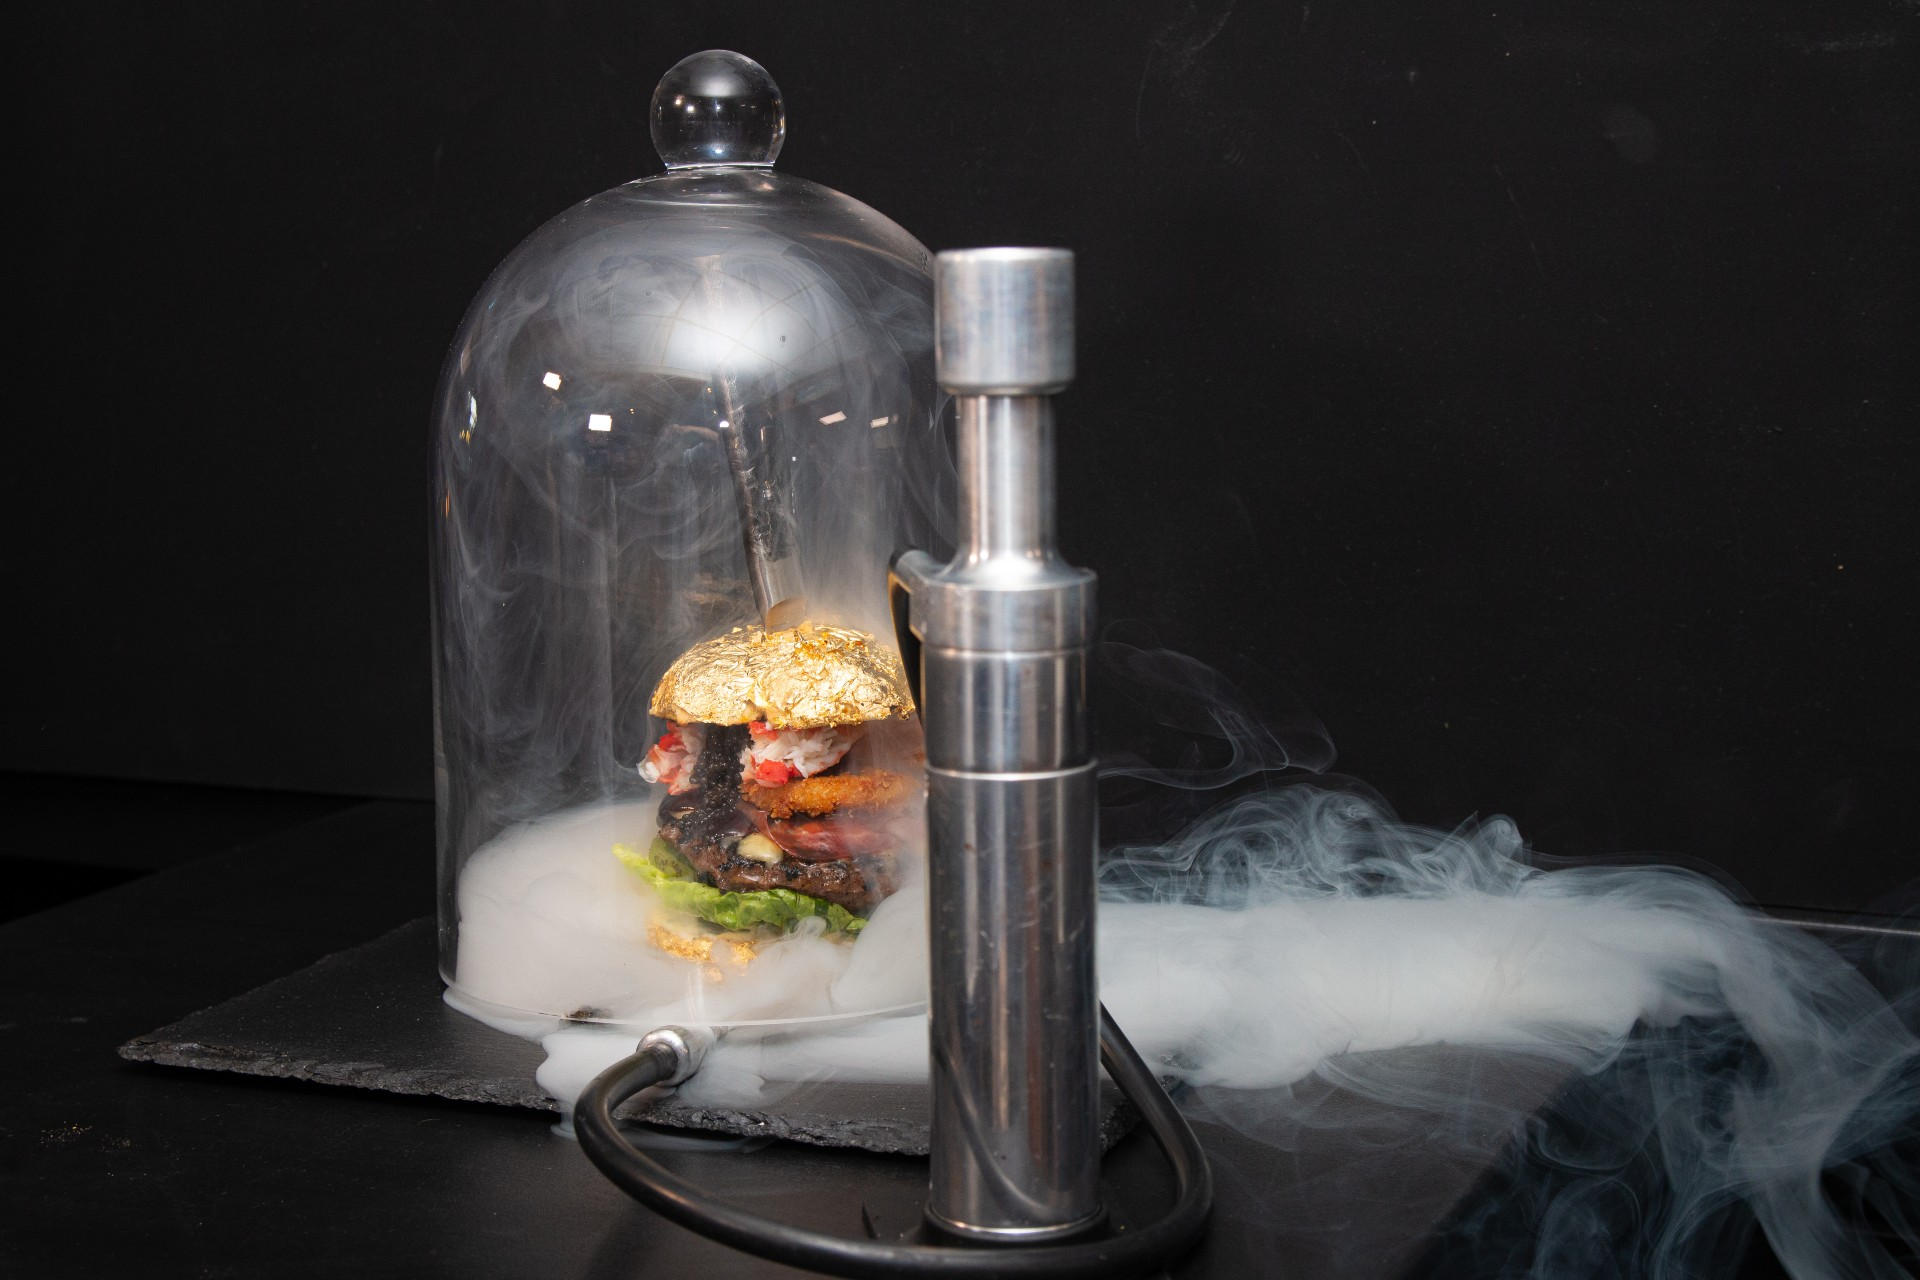 World Most Expensive Hamburger made in Holland, for $6,000 (Rs958,304)